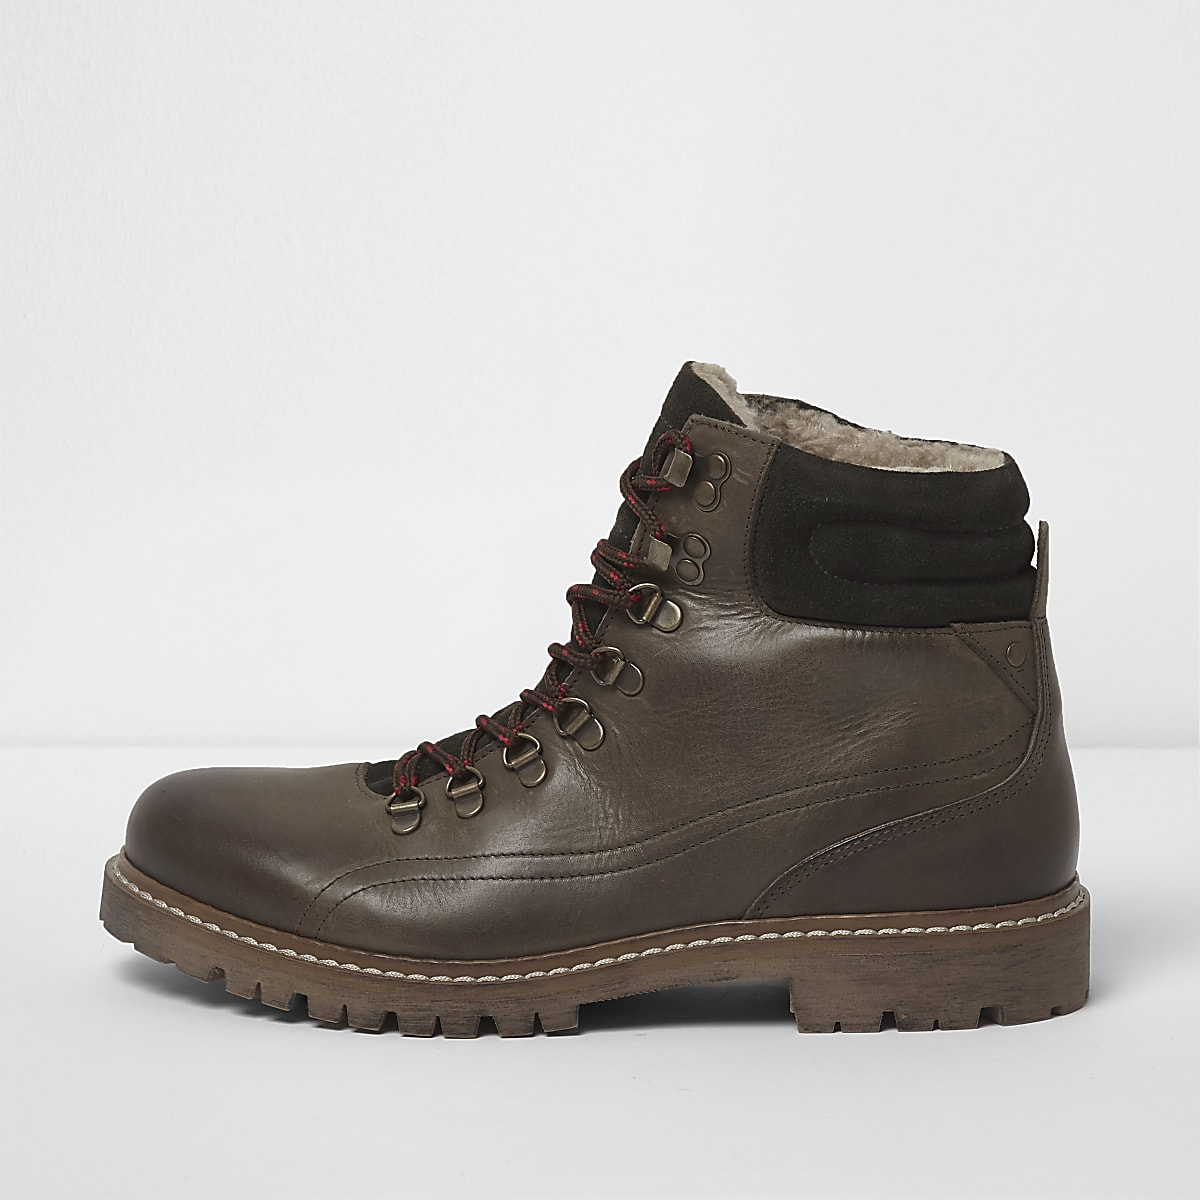 Dark green borg lined lace-up hiker boots